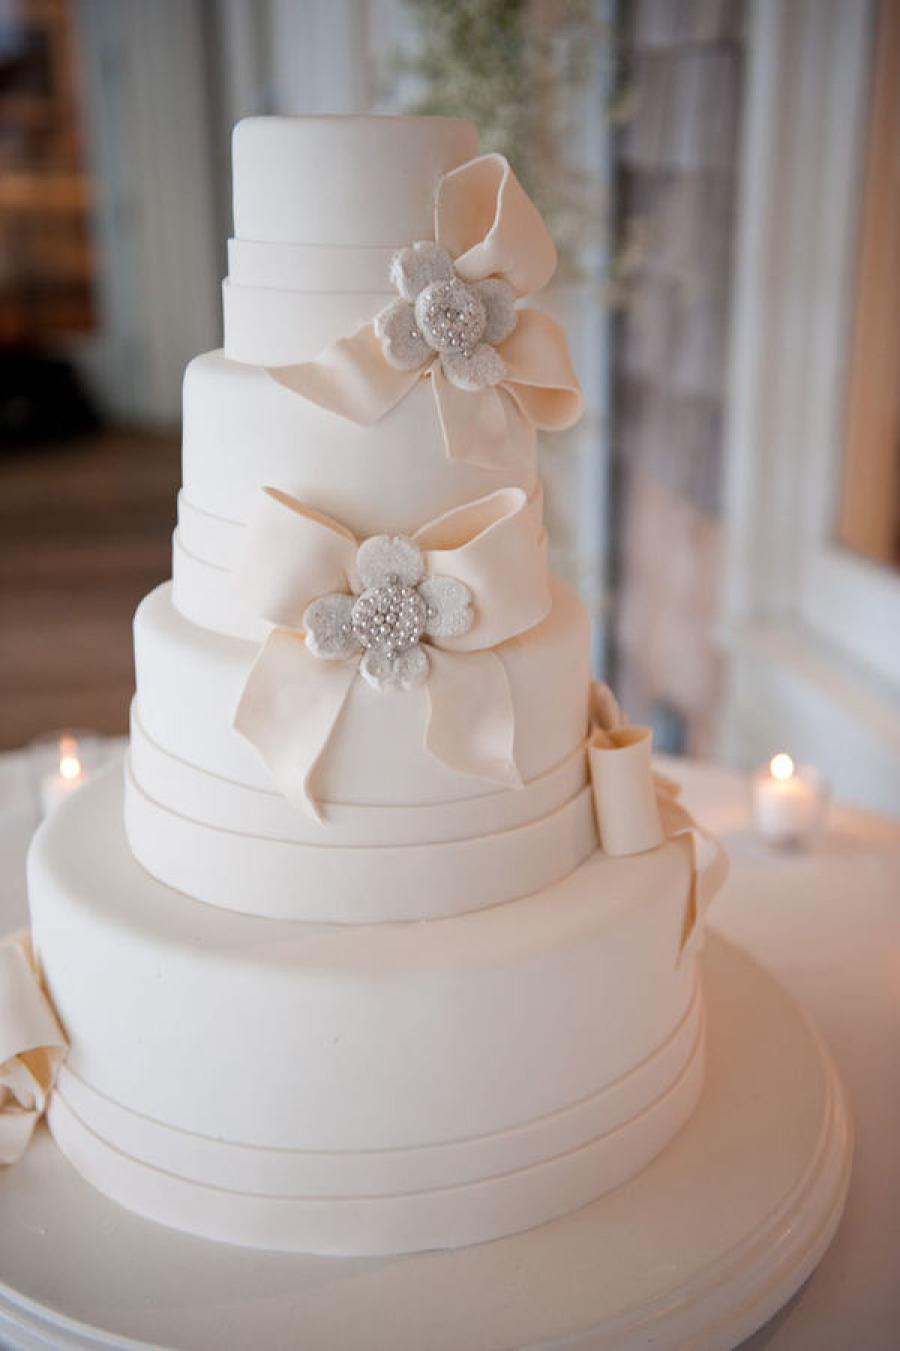 Feast Your Eyes On 21Delicious Wedding Cake Ideas